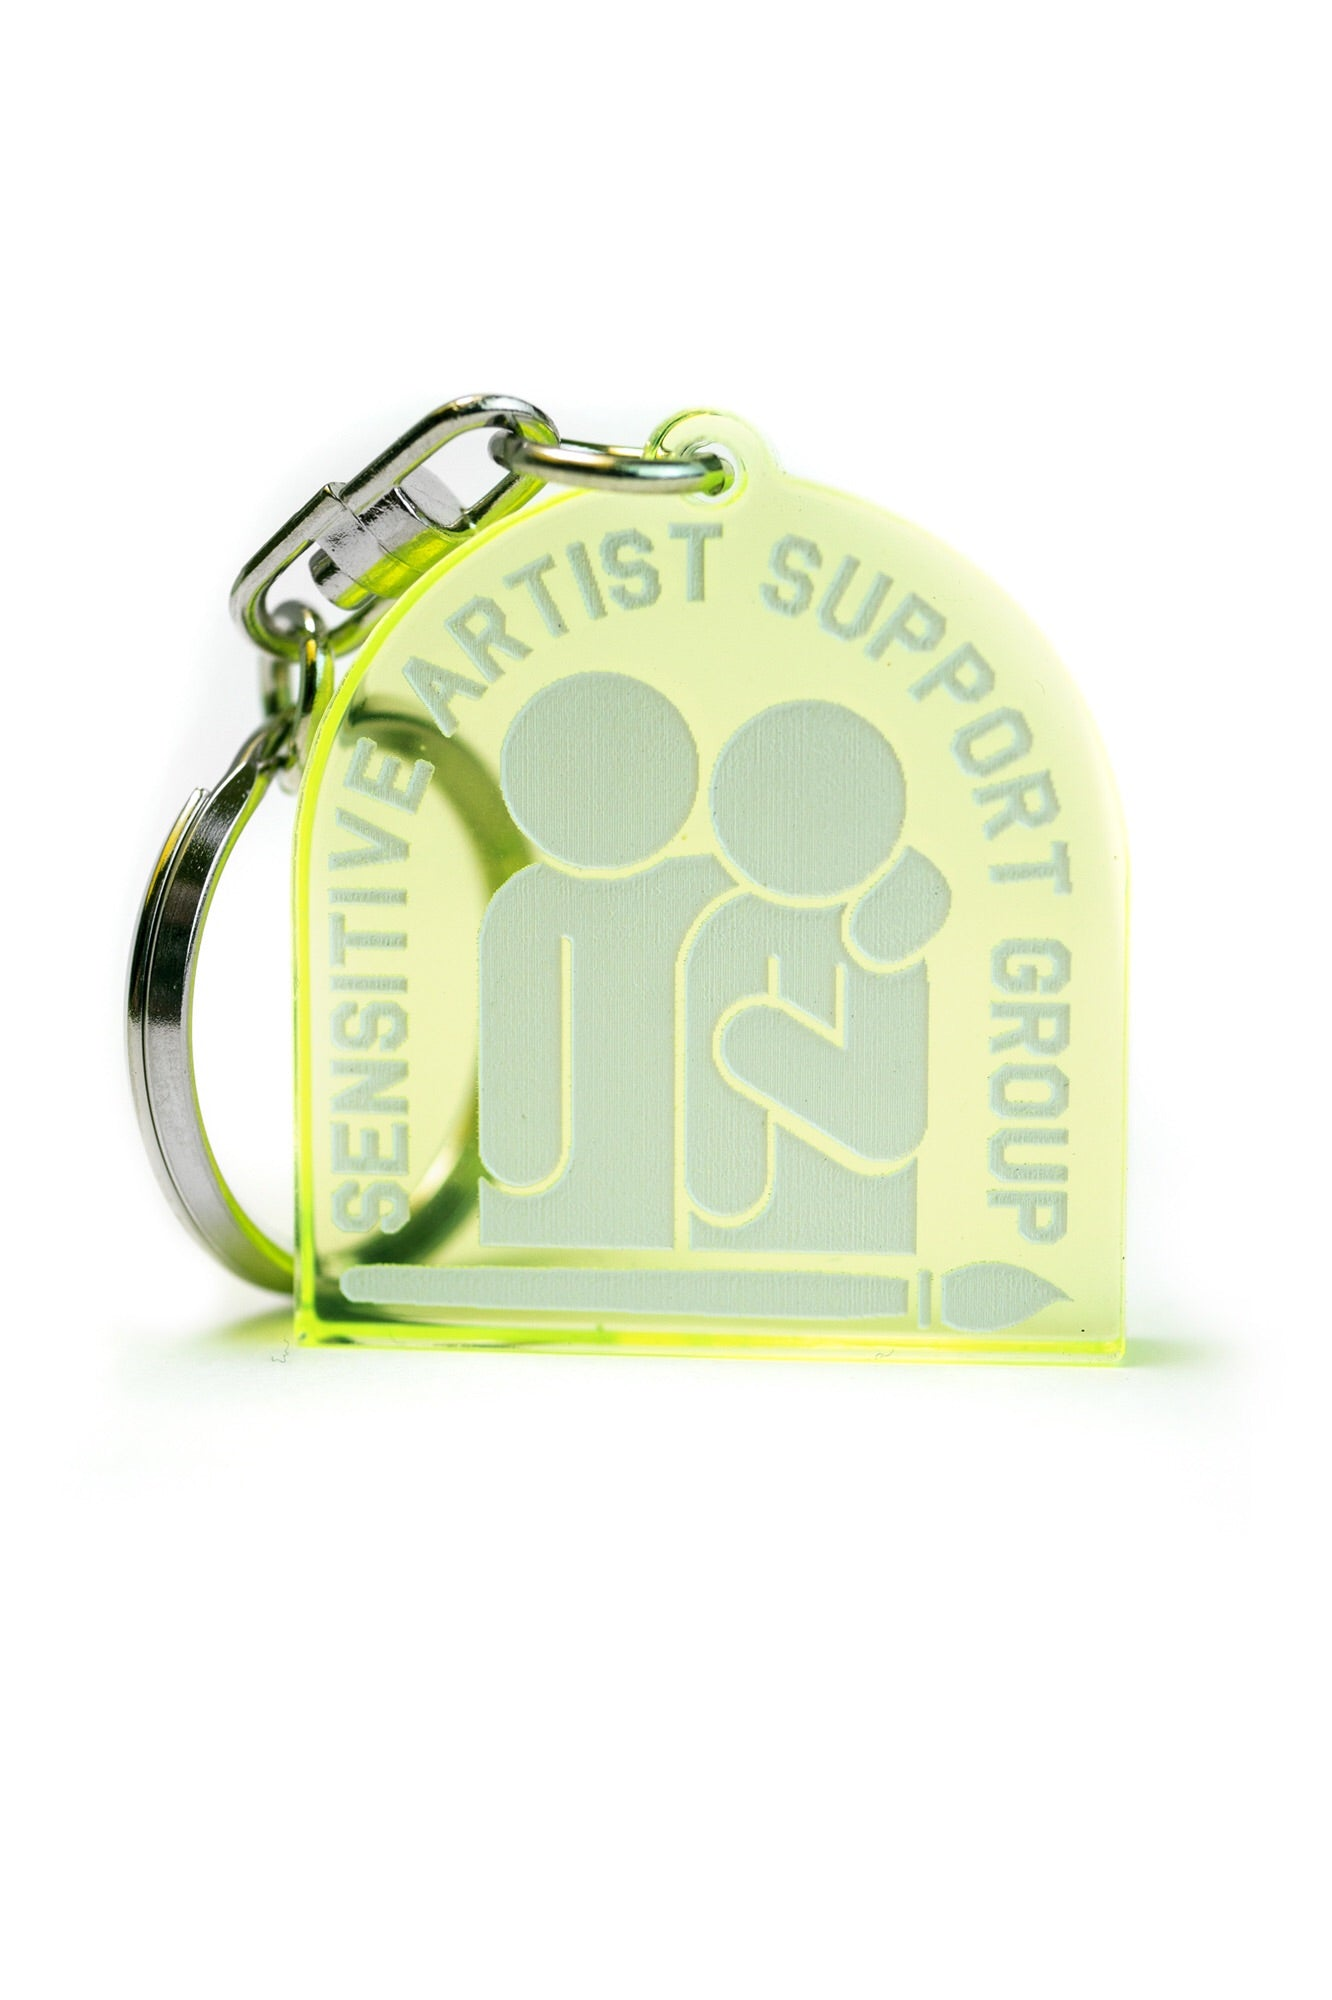 Sensitive artist support group Keychain, Green